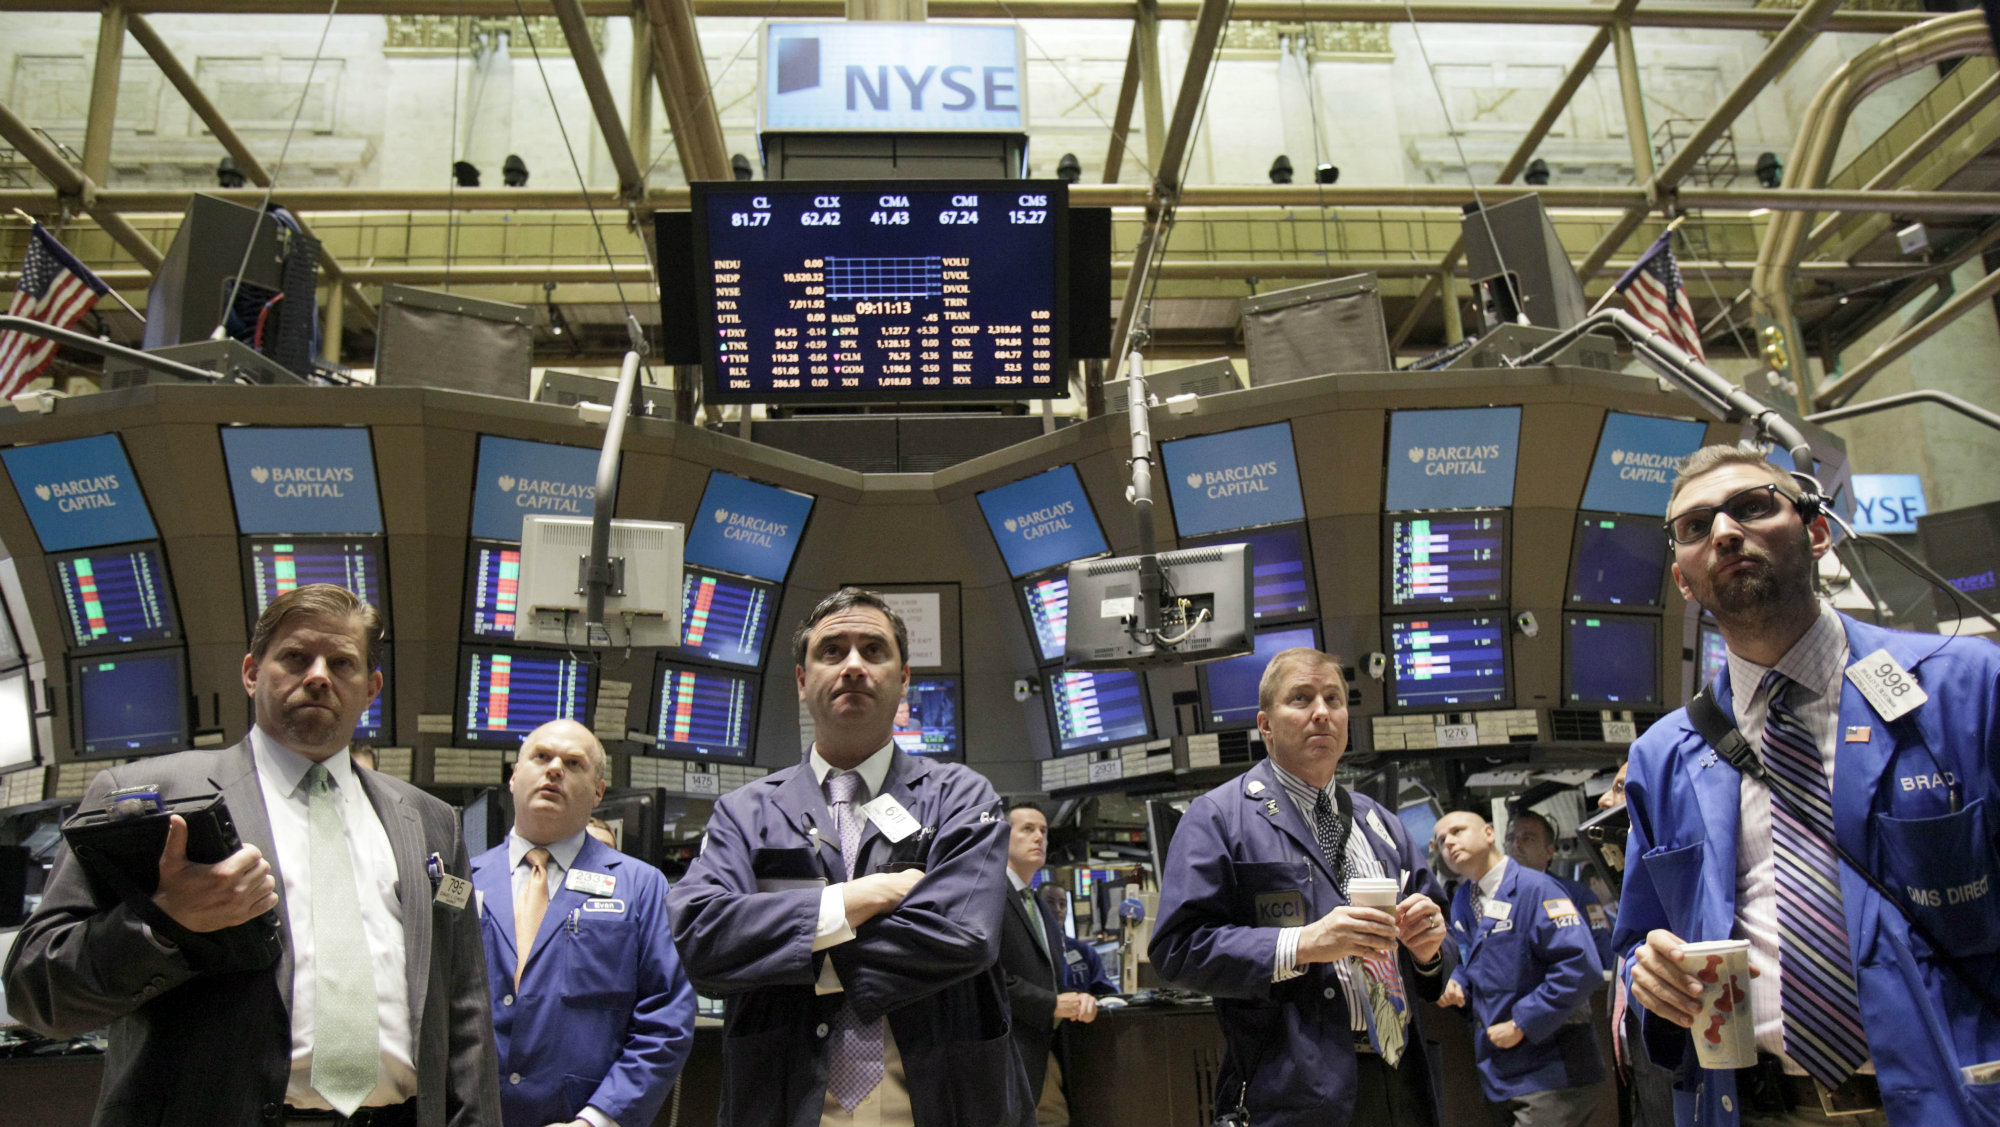 Why the New York Stock Exchange (NYSE